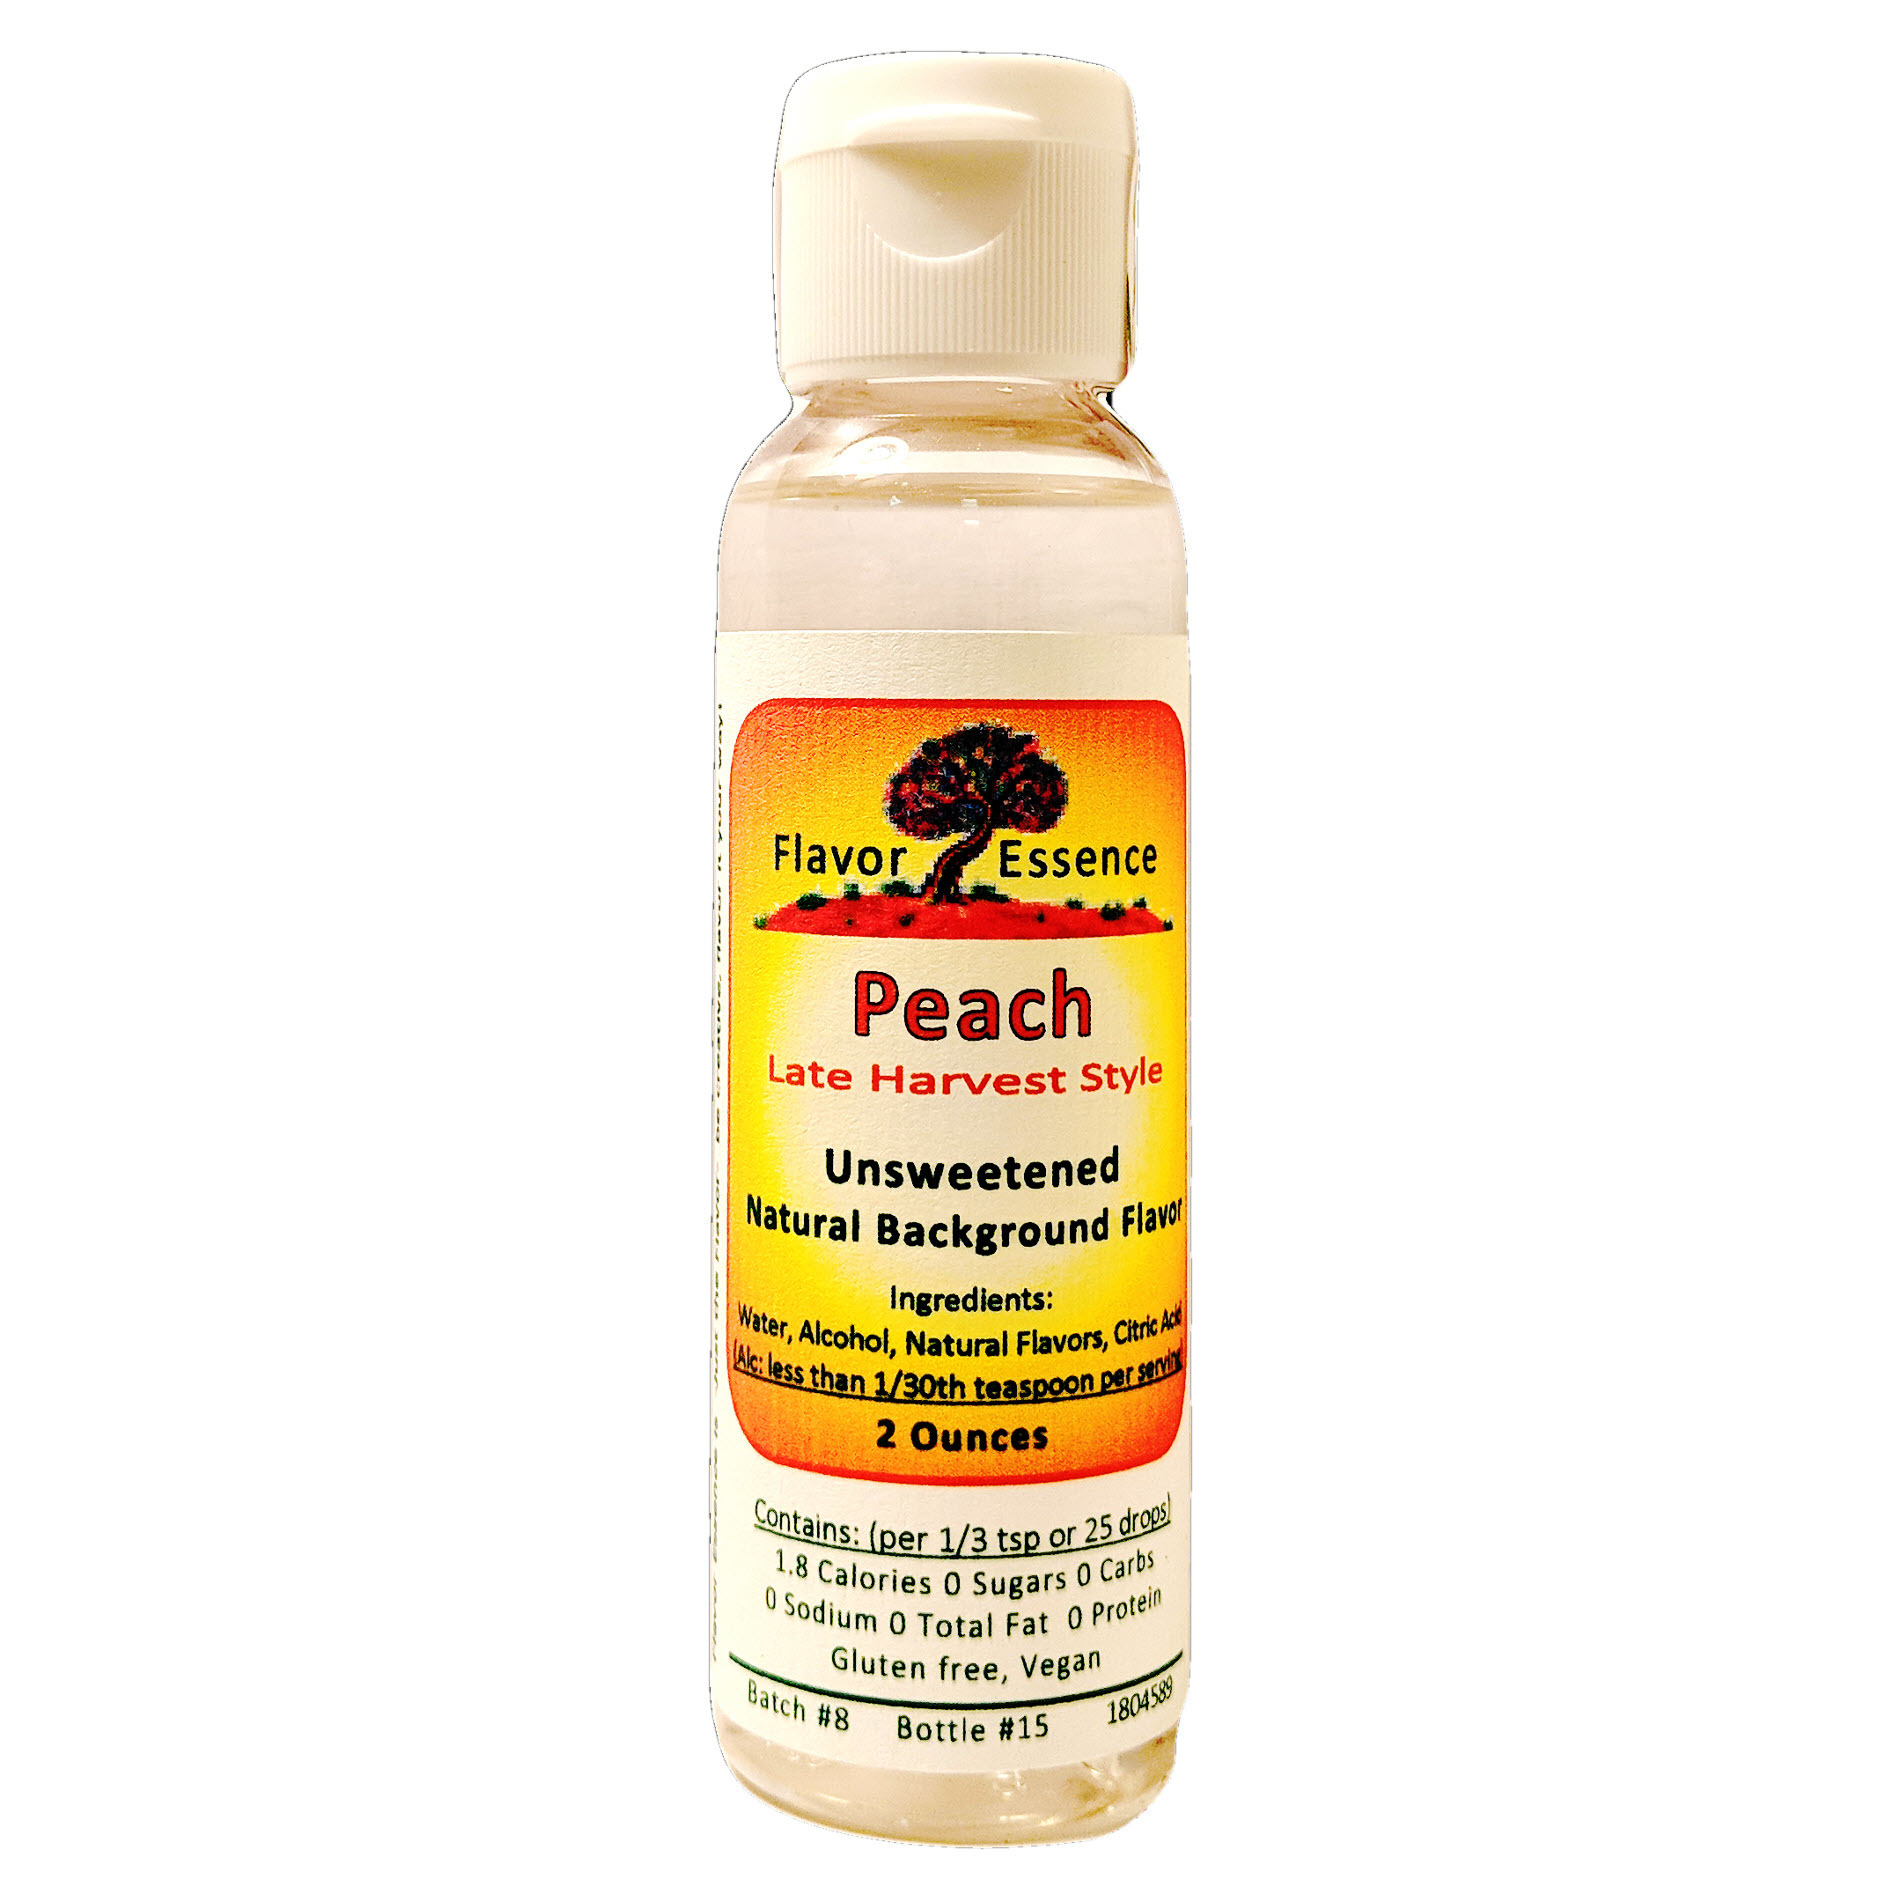 Flavor Essence PEACH (Late Harvest Style) -Unsweetened Natural Flavoring PCH-